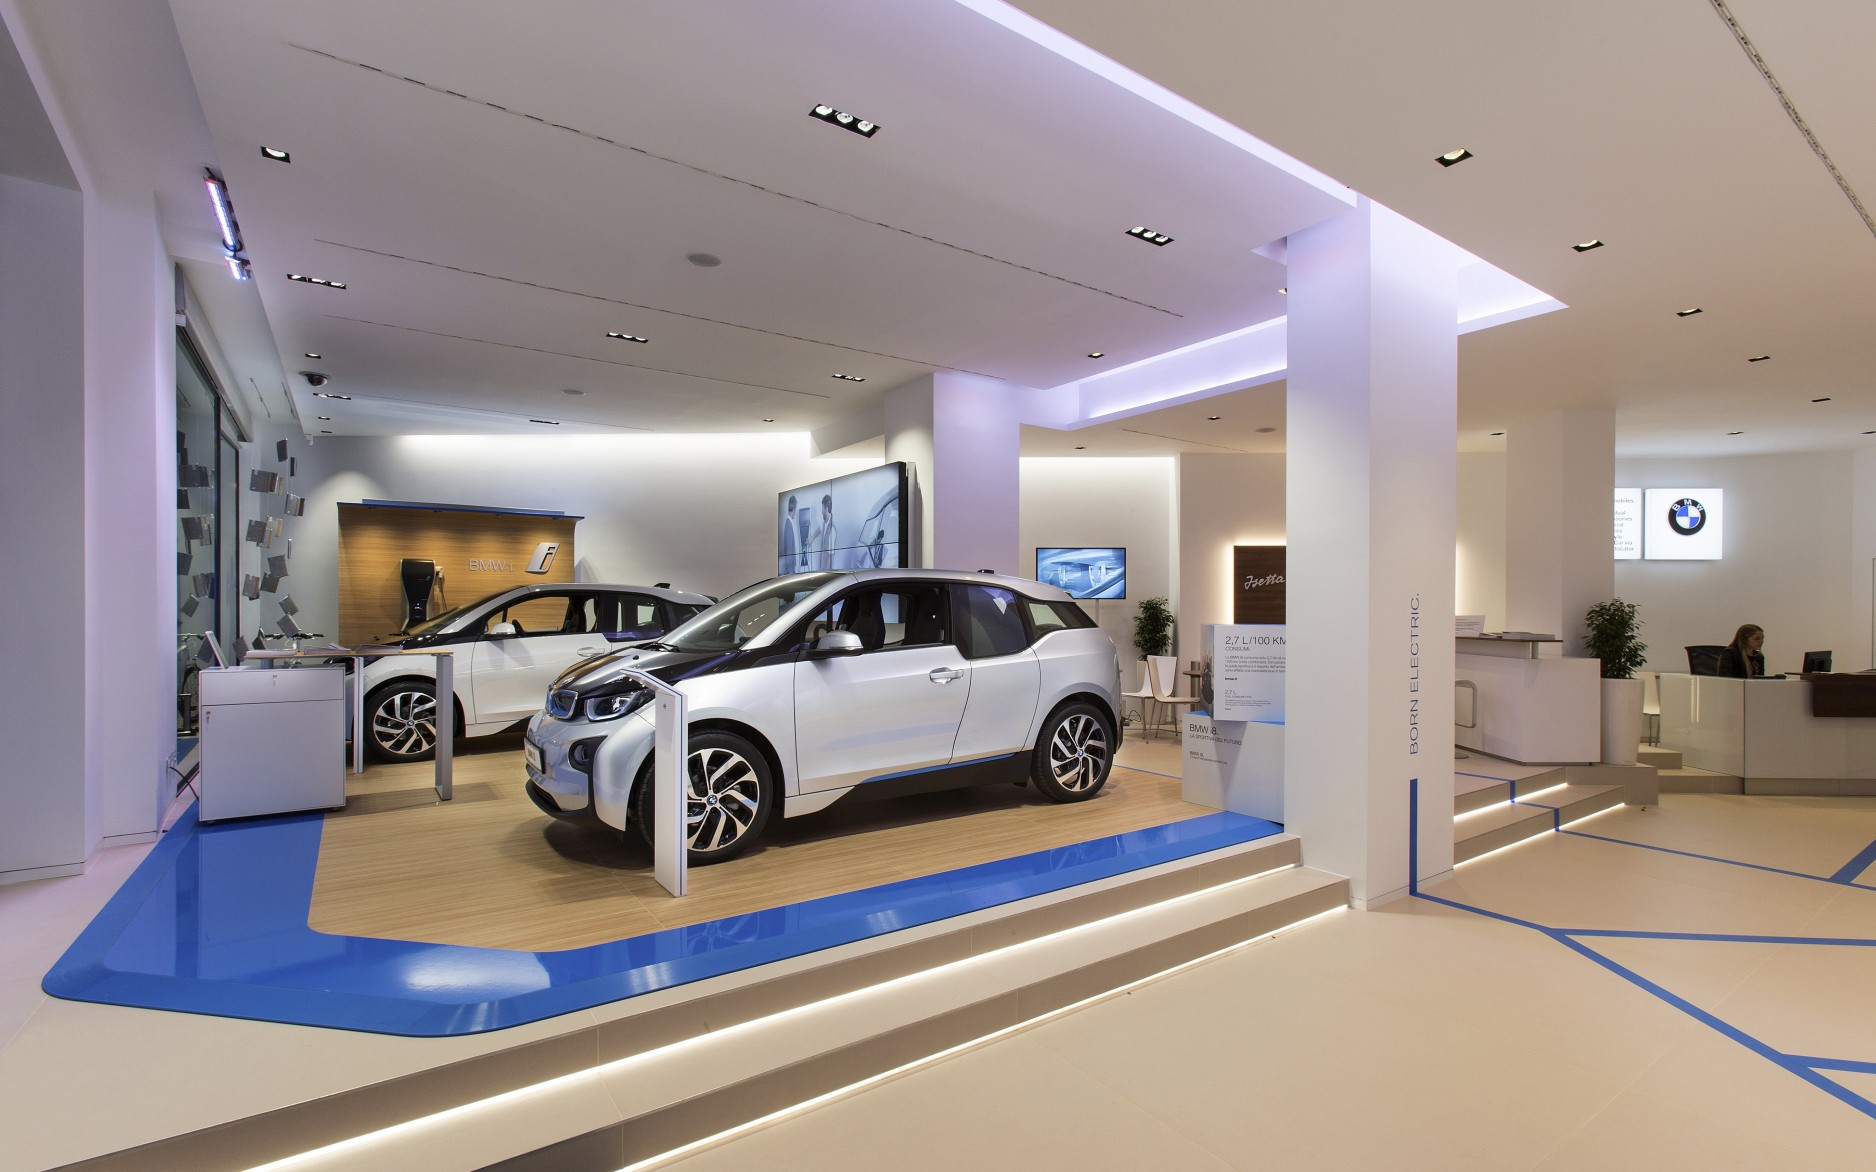 Lighting designer Piero Comparotto used Lumenpulse Multi downlights at the BMW showroom in Rome.